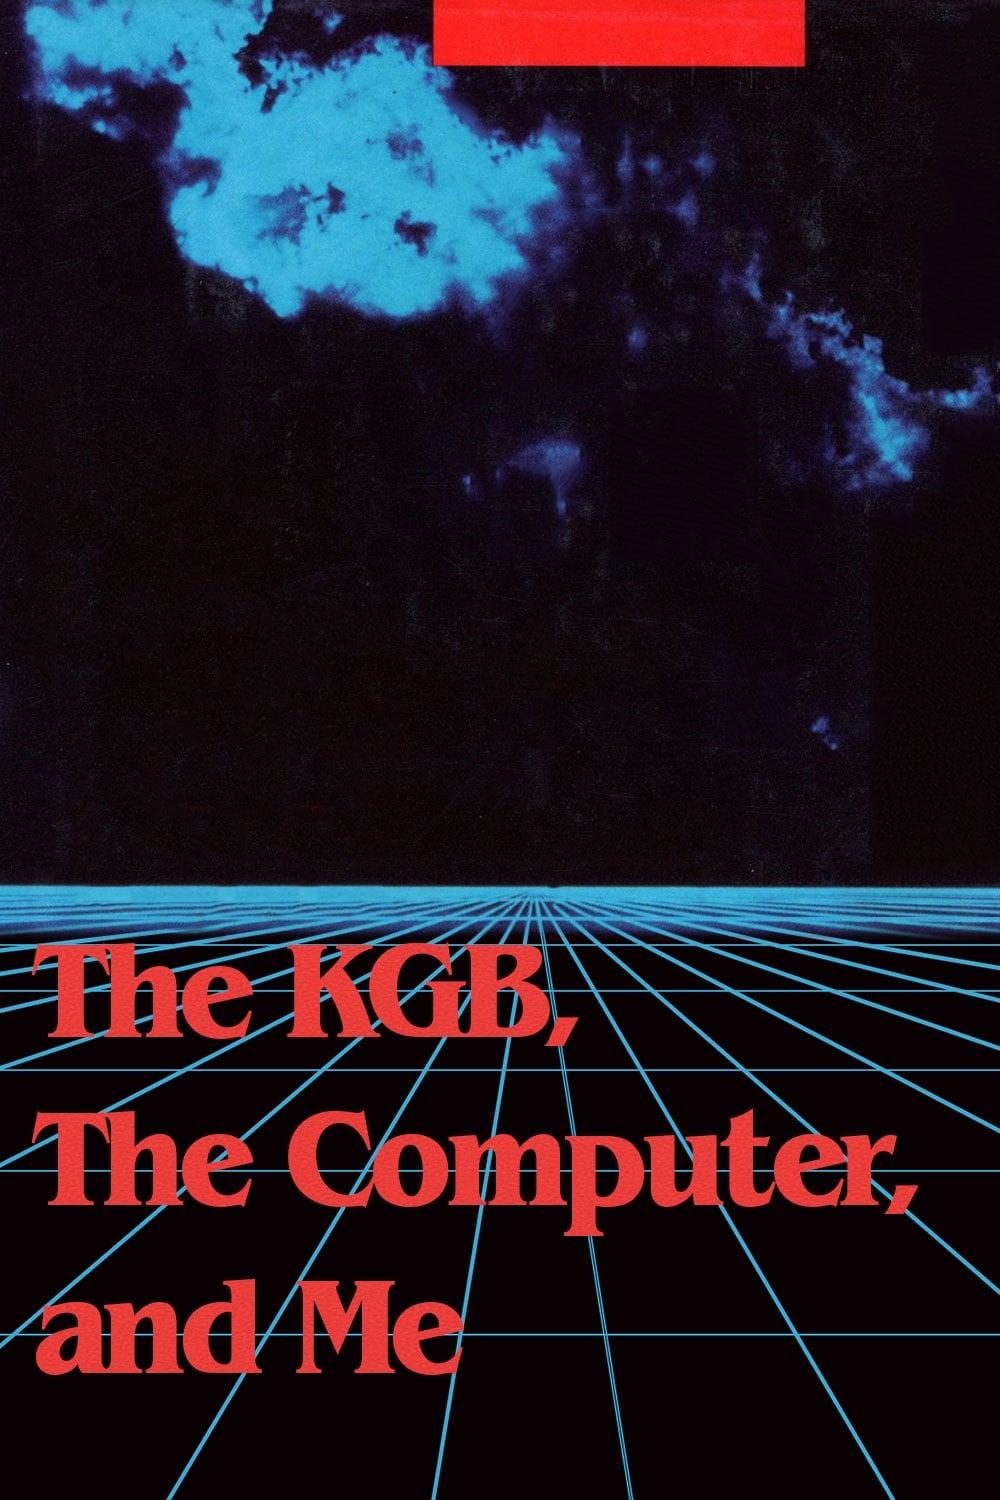 The KGB, the Computer and Me